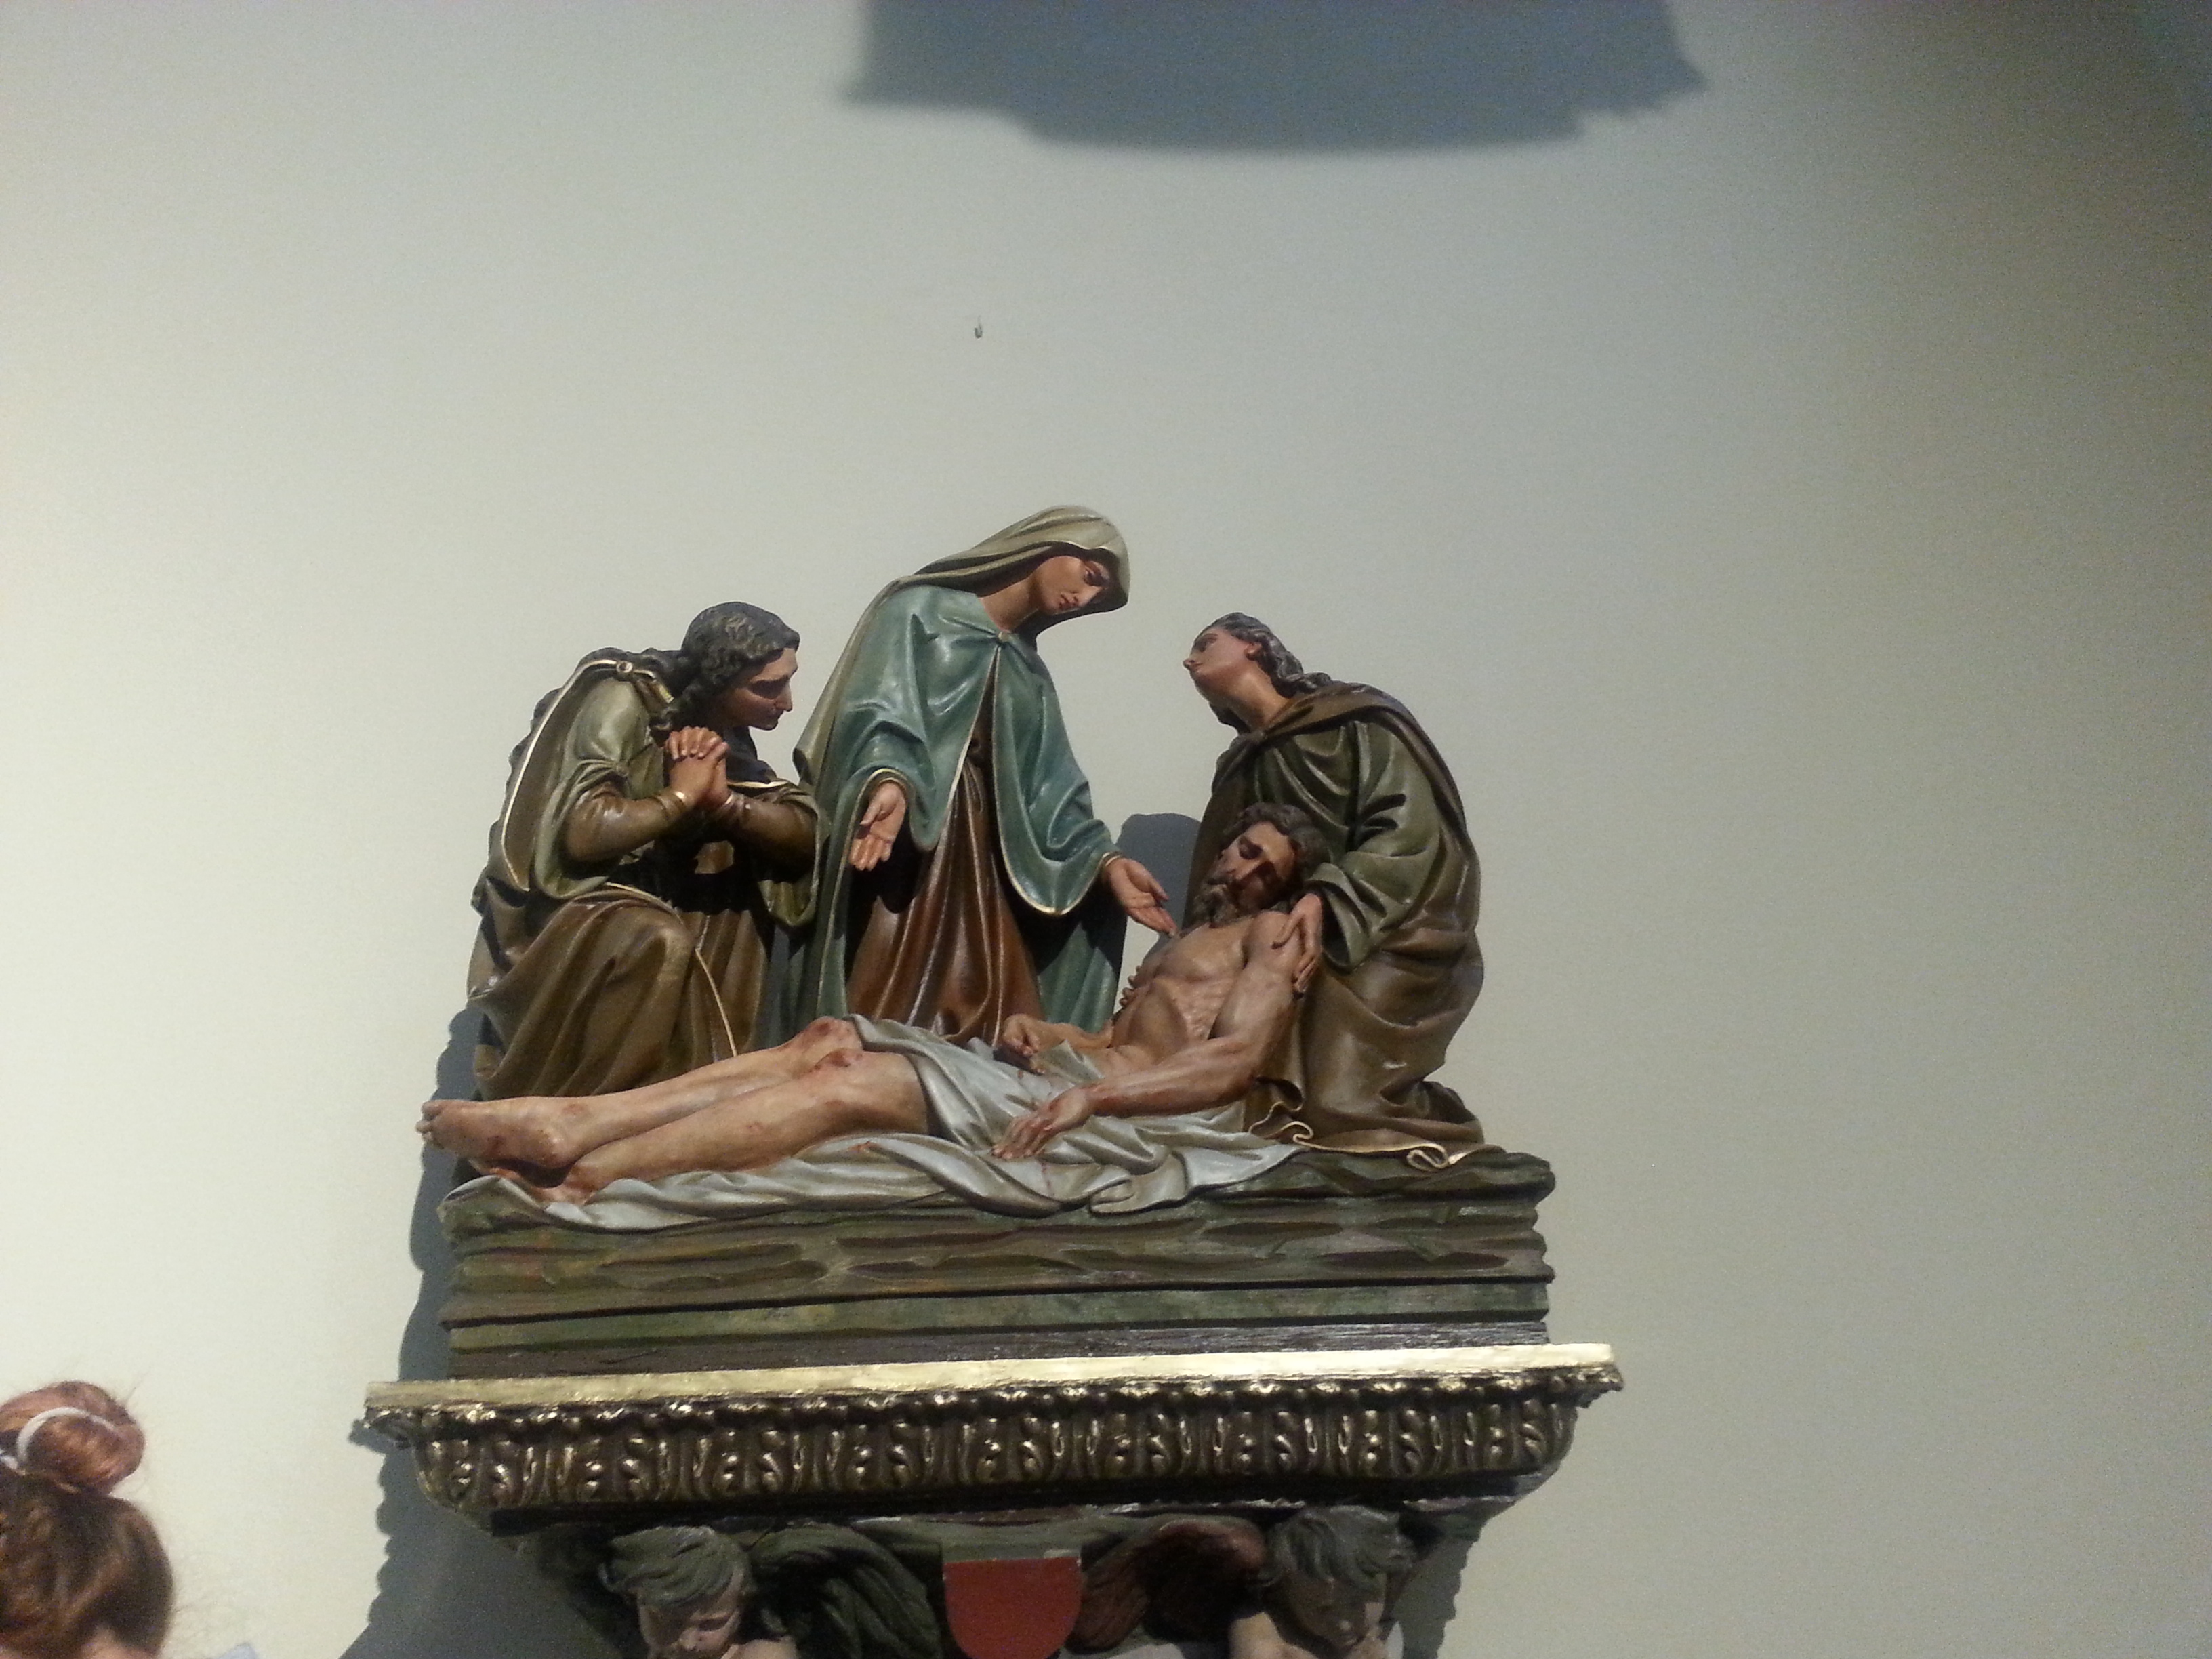 FPDR restored station of the cross